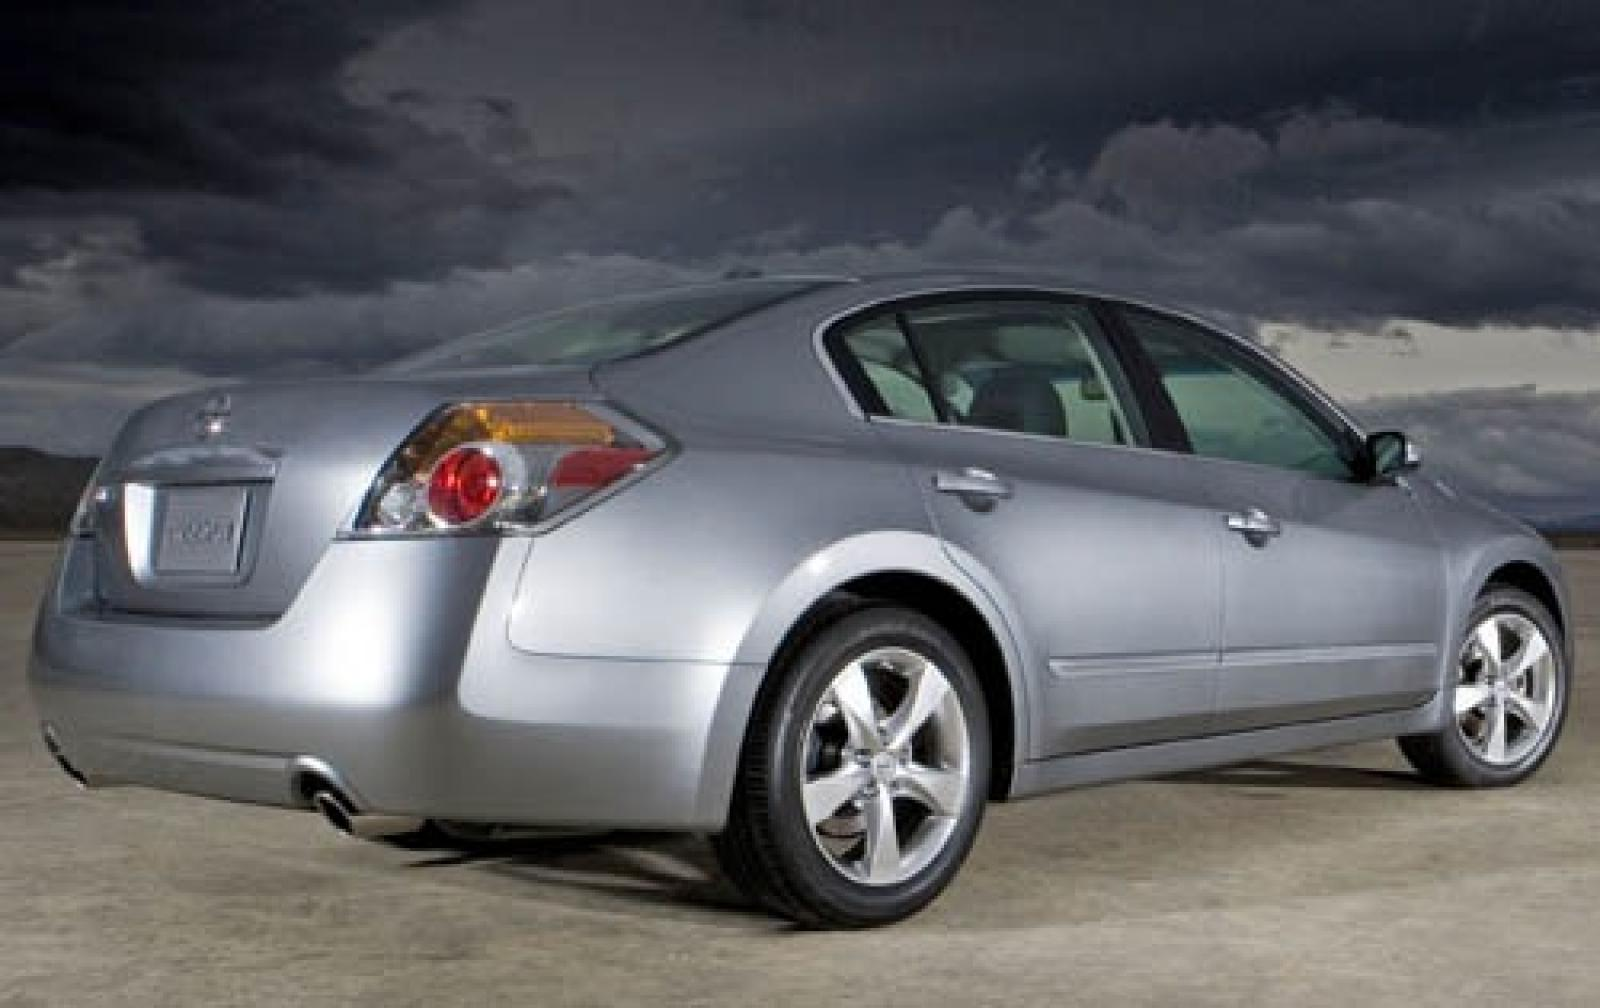 2007 nissan altima information and photos zombiedrive. Black Bedroom Furniture Sets. Home Design Ideas